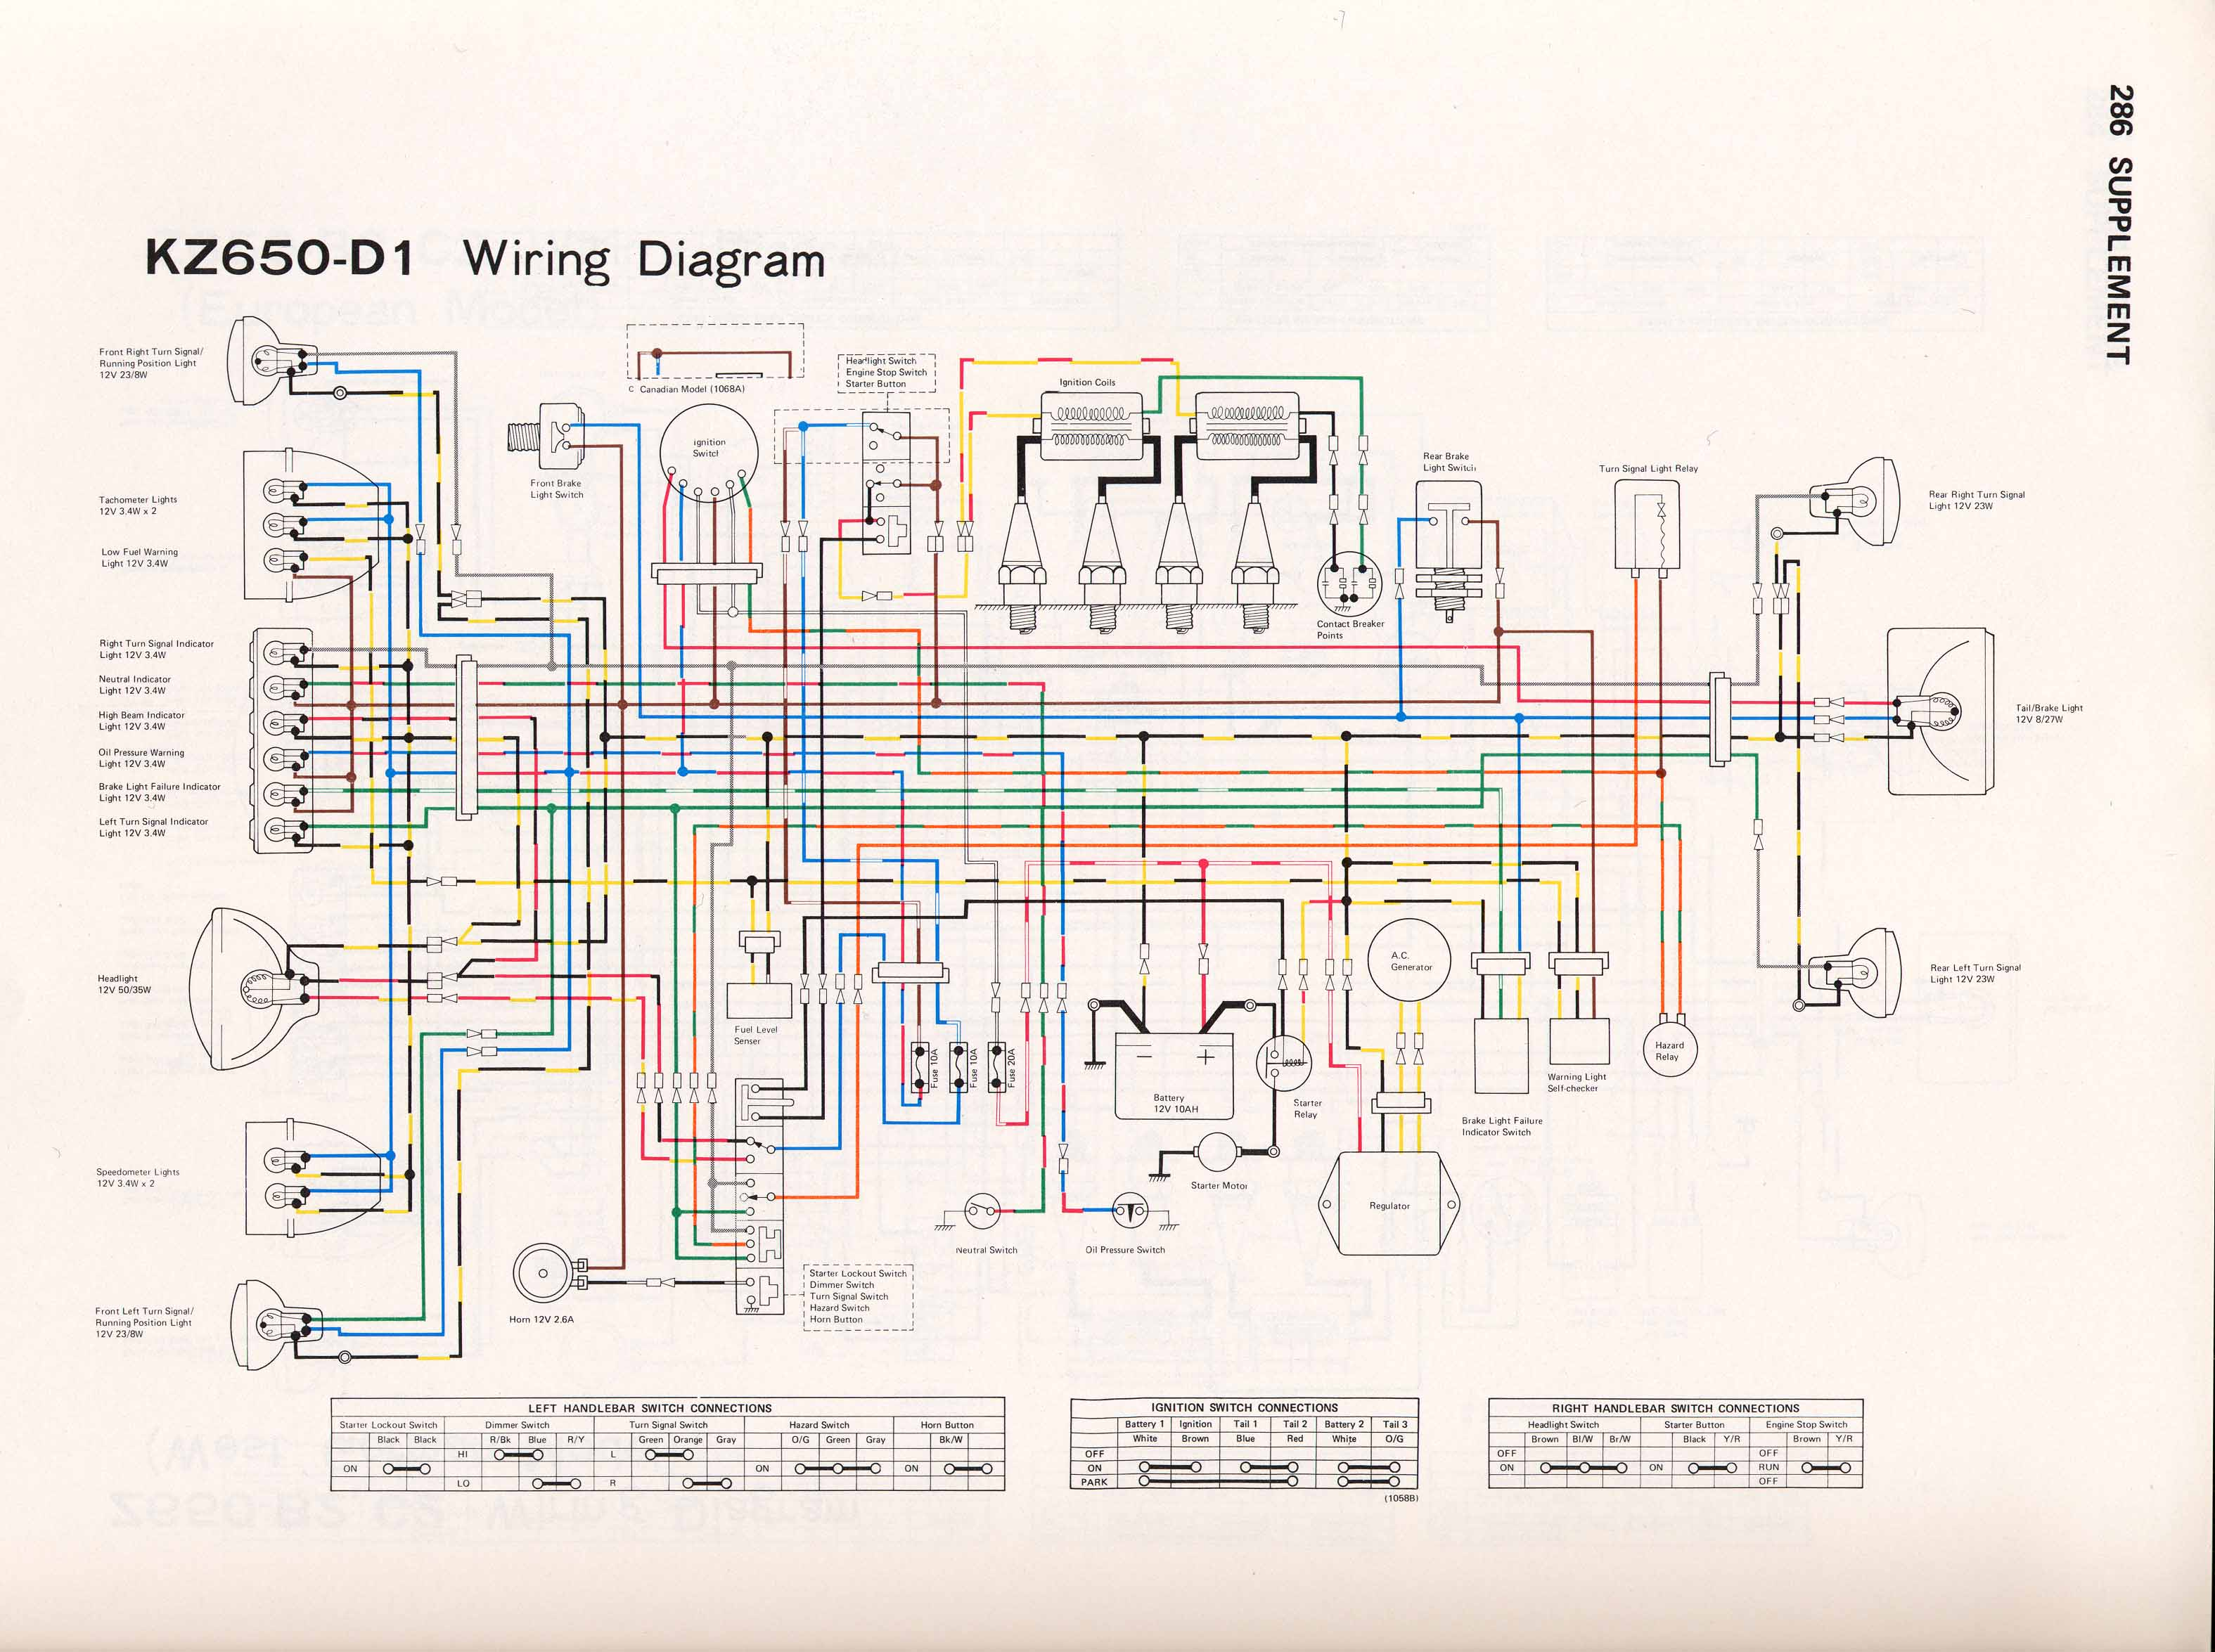 kz650.info - wiring diagrams kawasaki kz650 wiring diagram free download schematic 80 kz650 wiring diagram #6